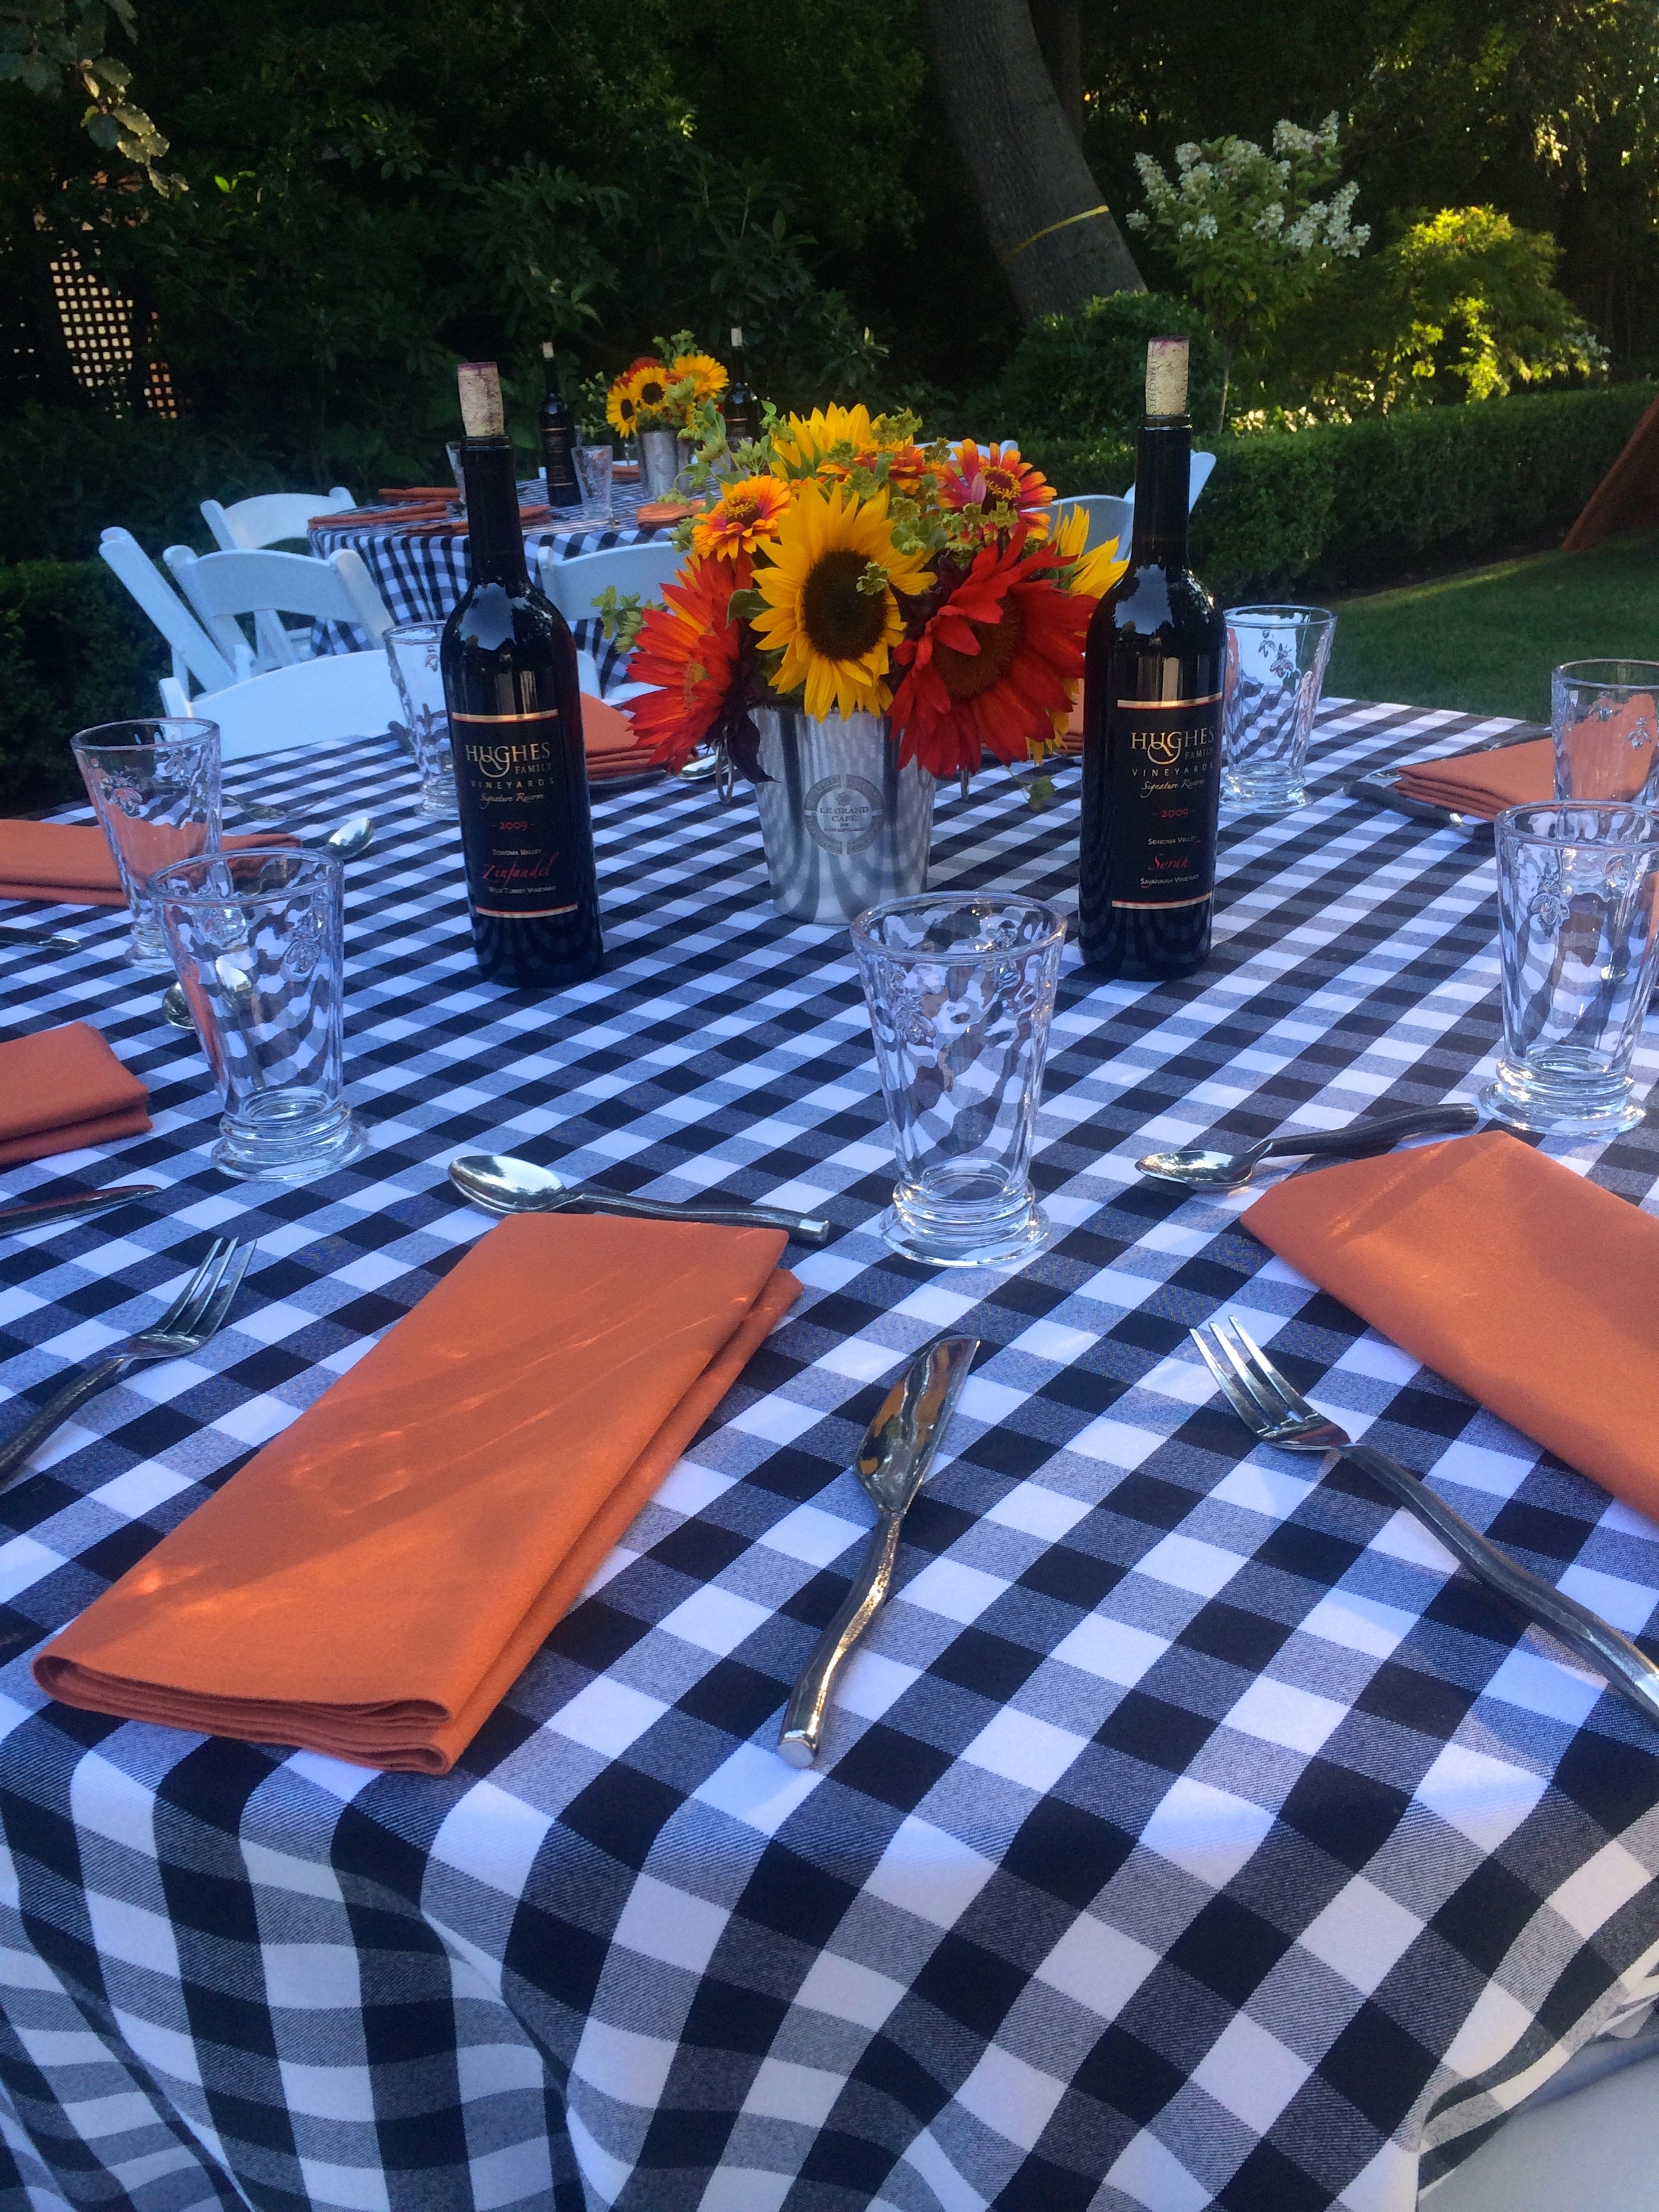 Hughes BBQ Table setting